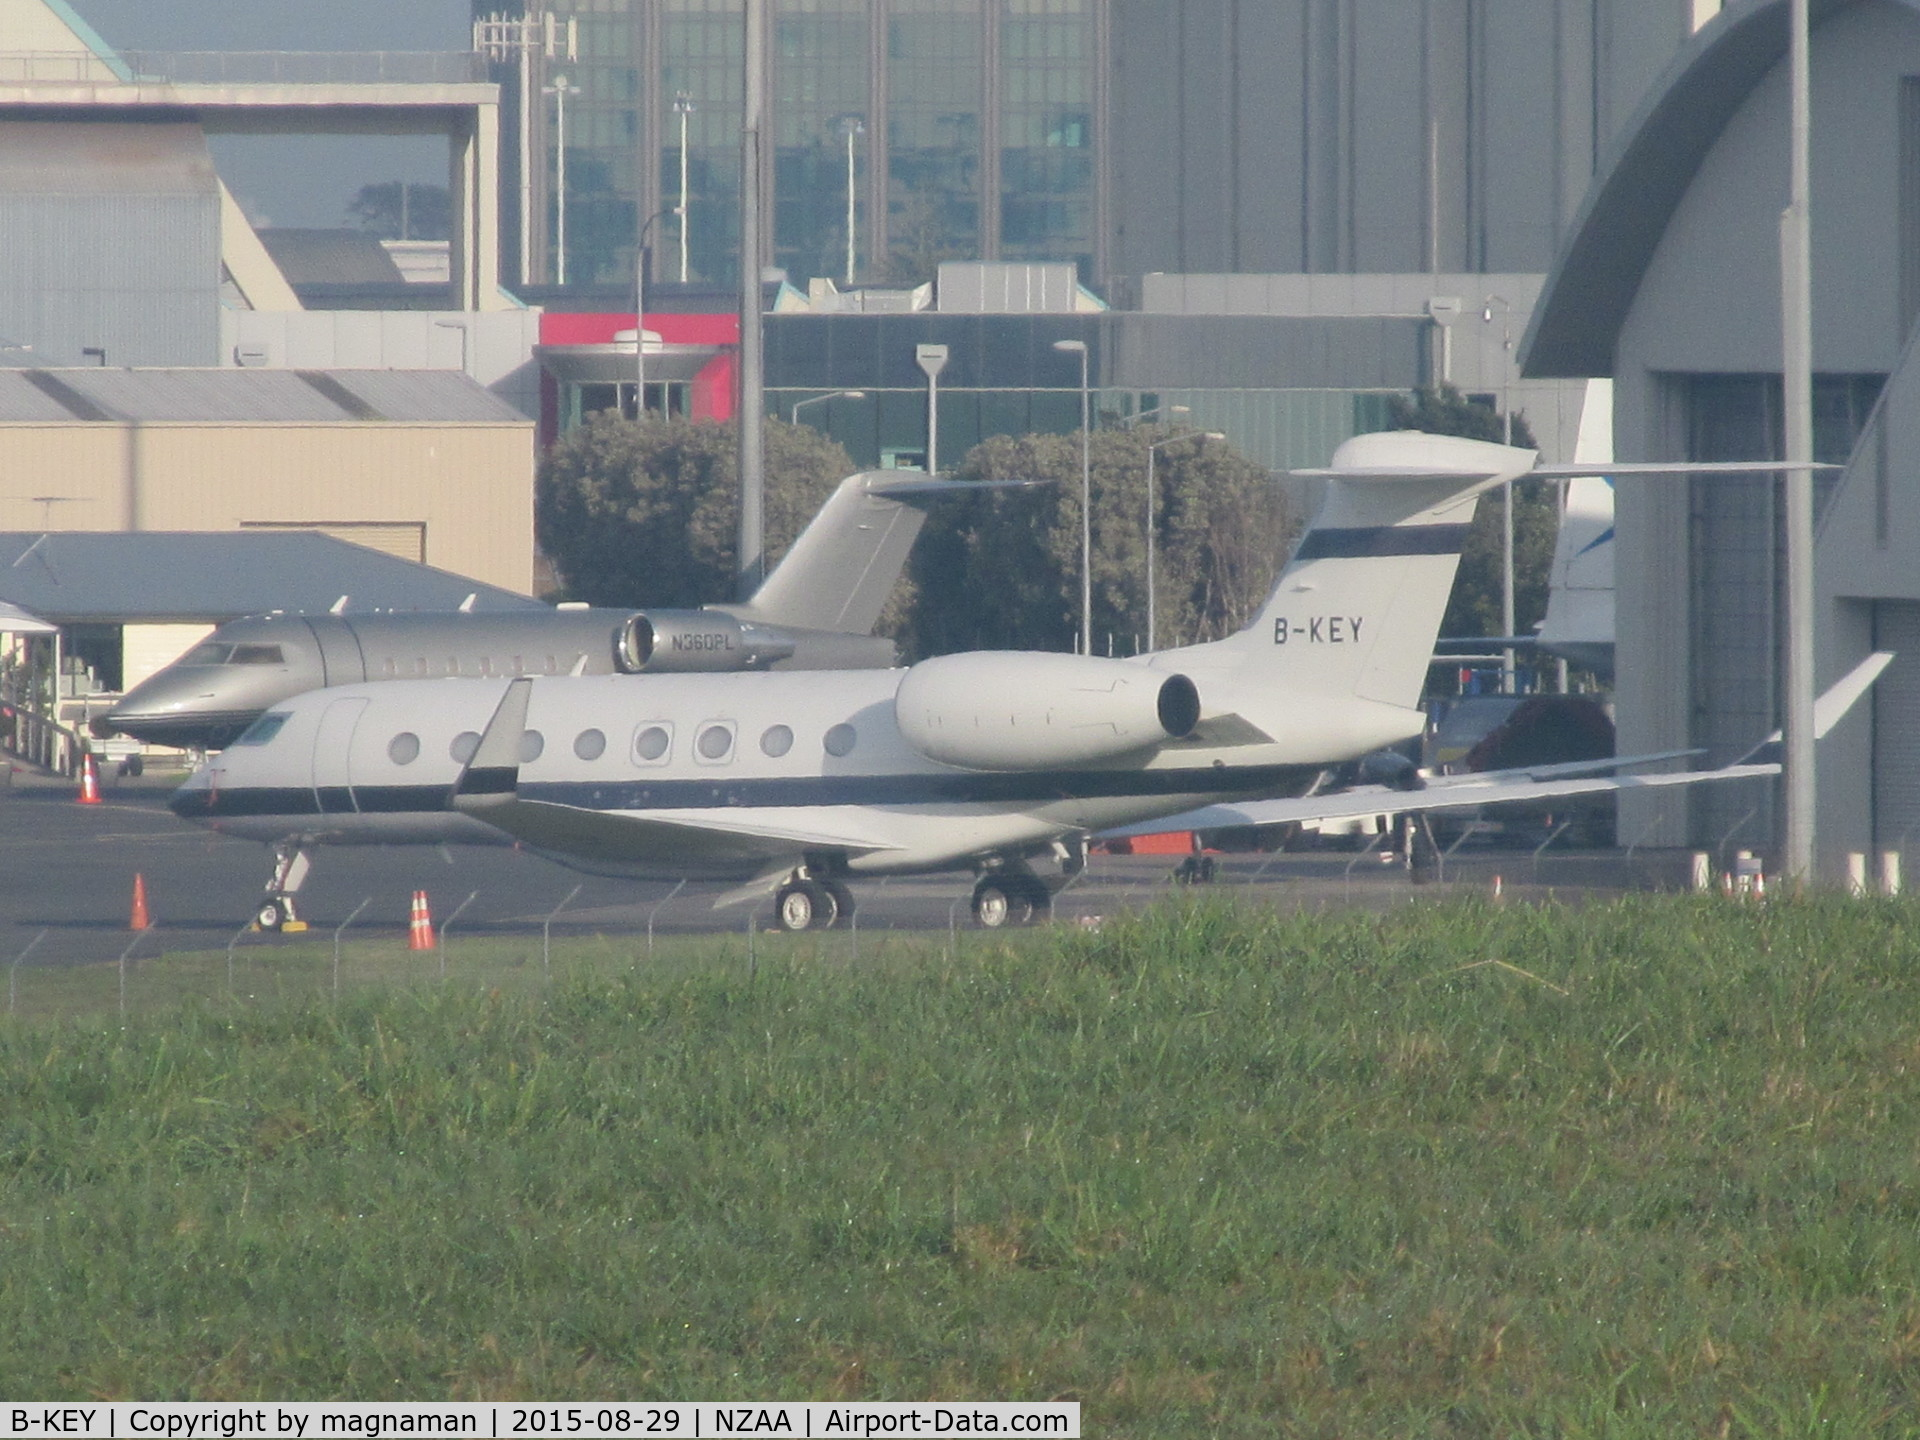 B-KEY, 2014 Gulfstream Aerospace G650 C/N 6098, long shot onto convair apron from public viewing area off puhinui road